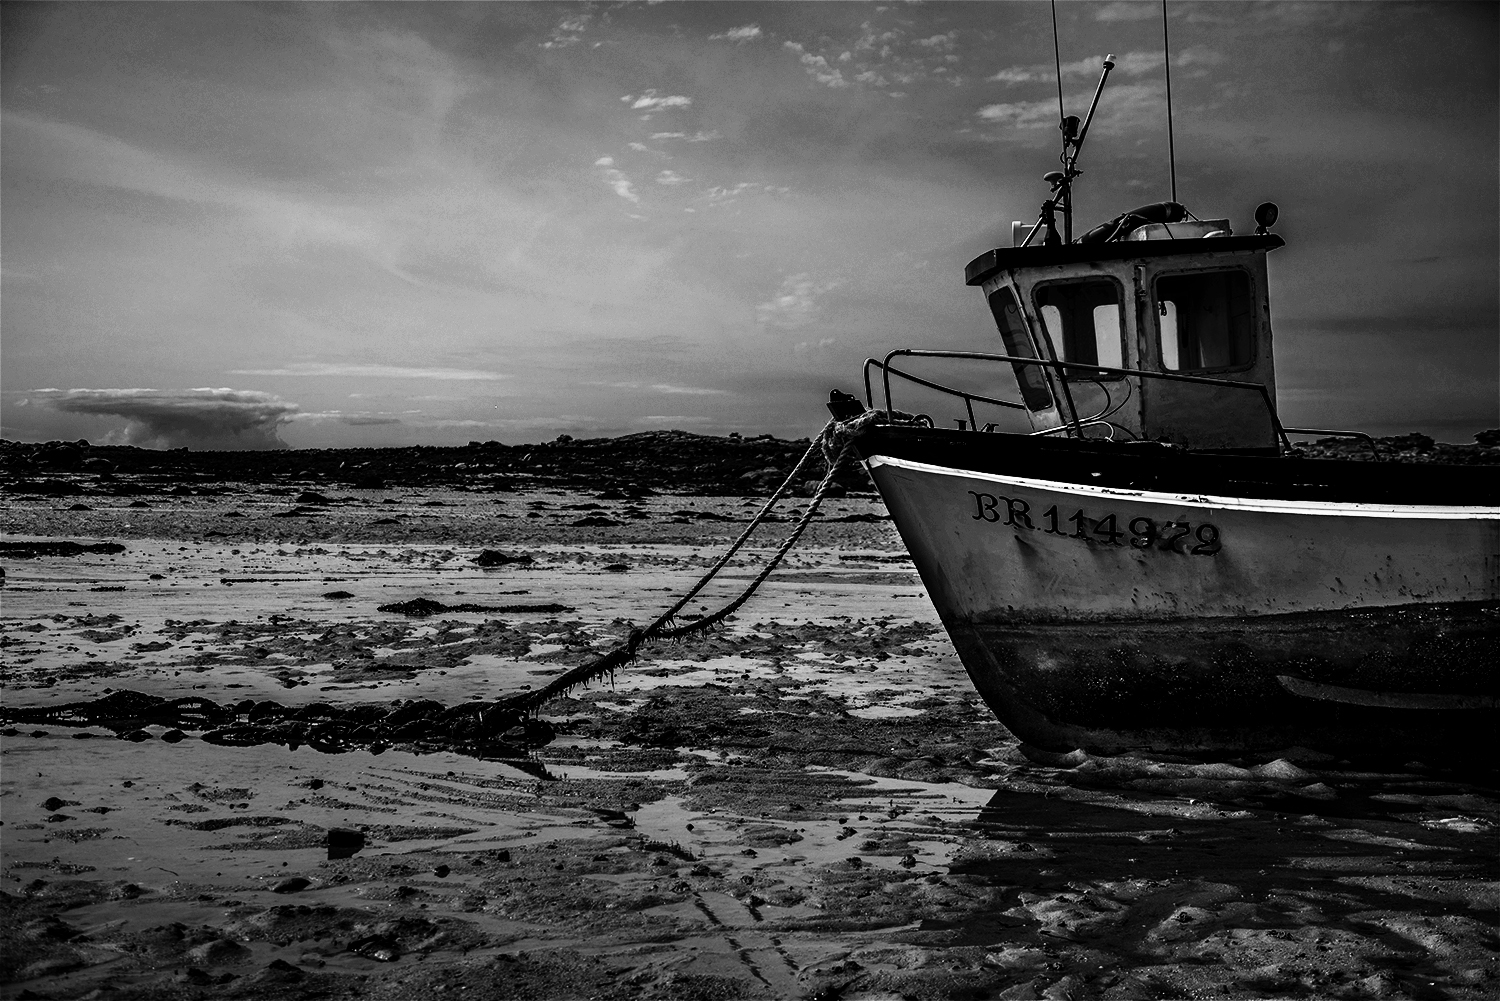 Brittany_Grounded_Fishing_Boats-029.jpg